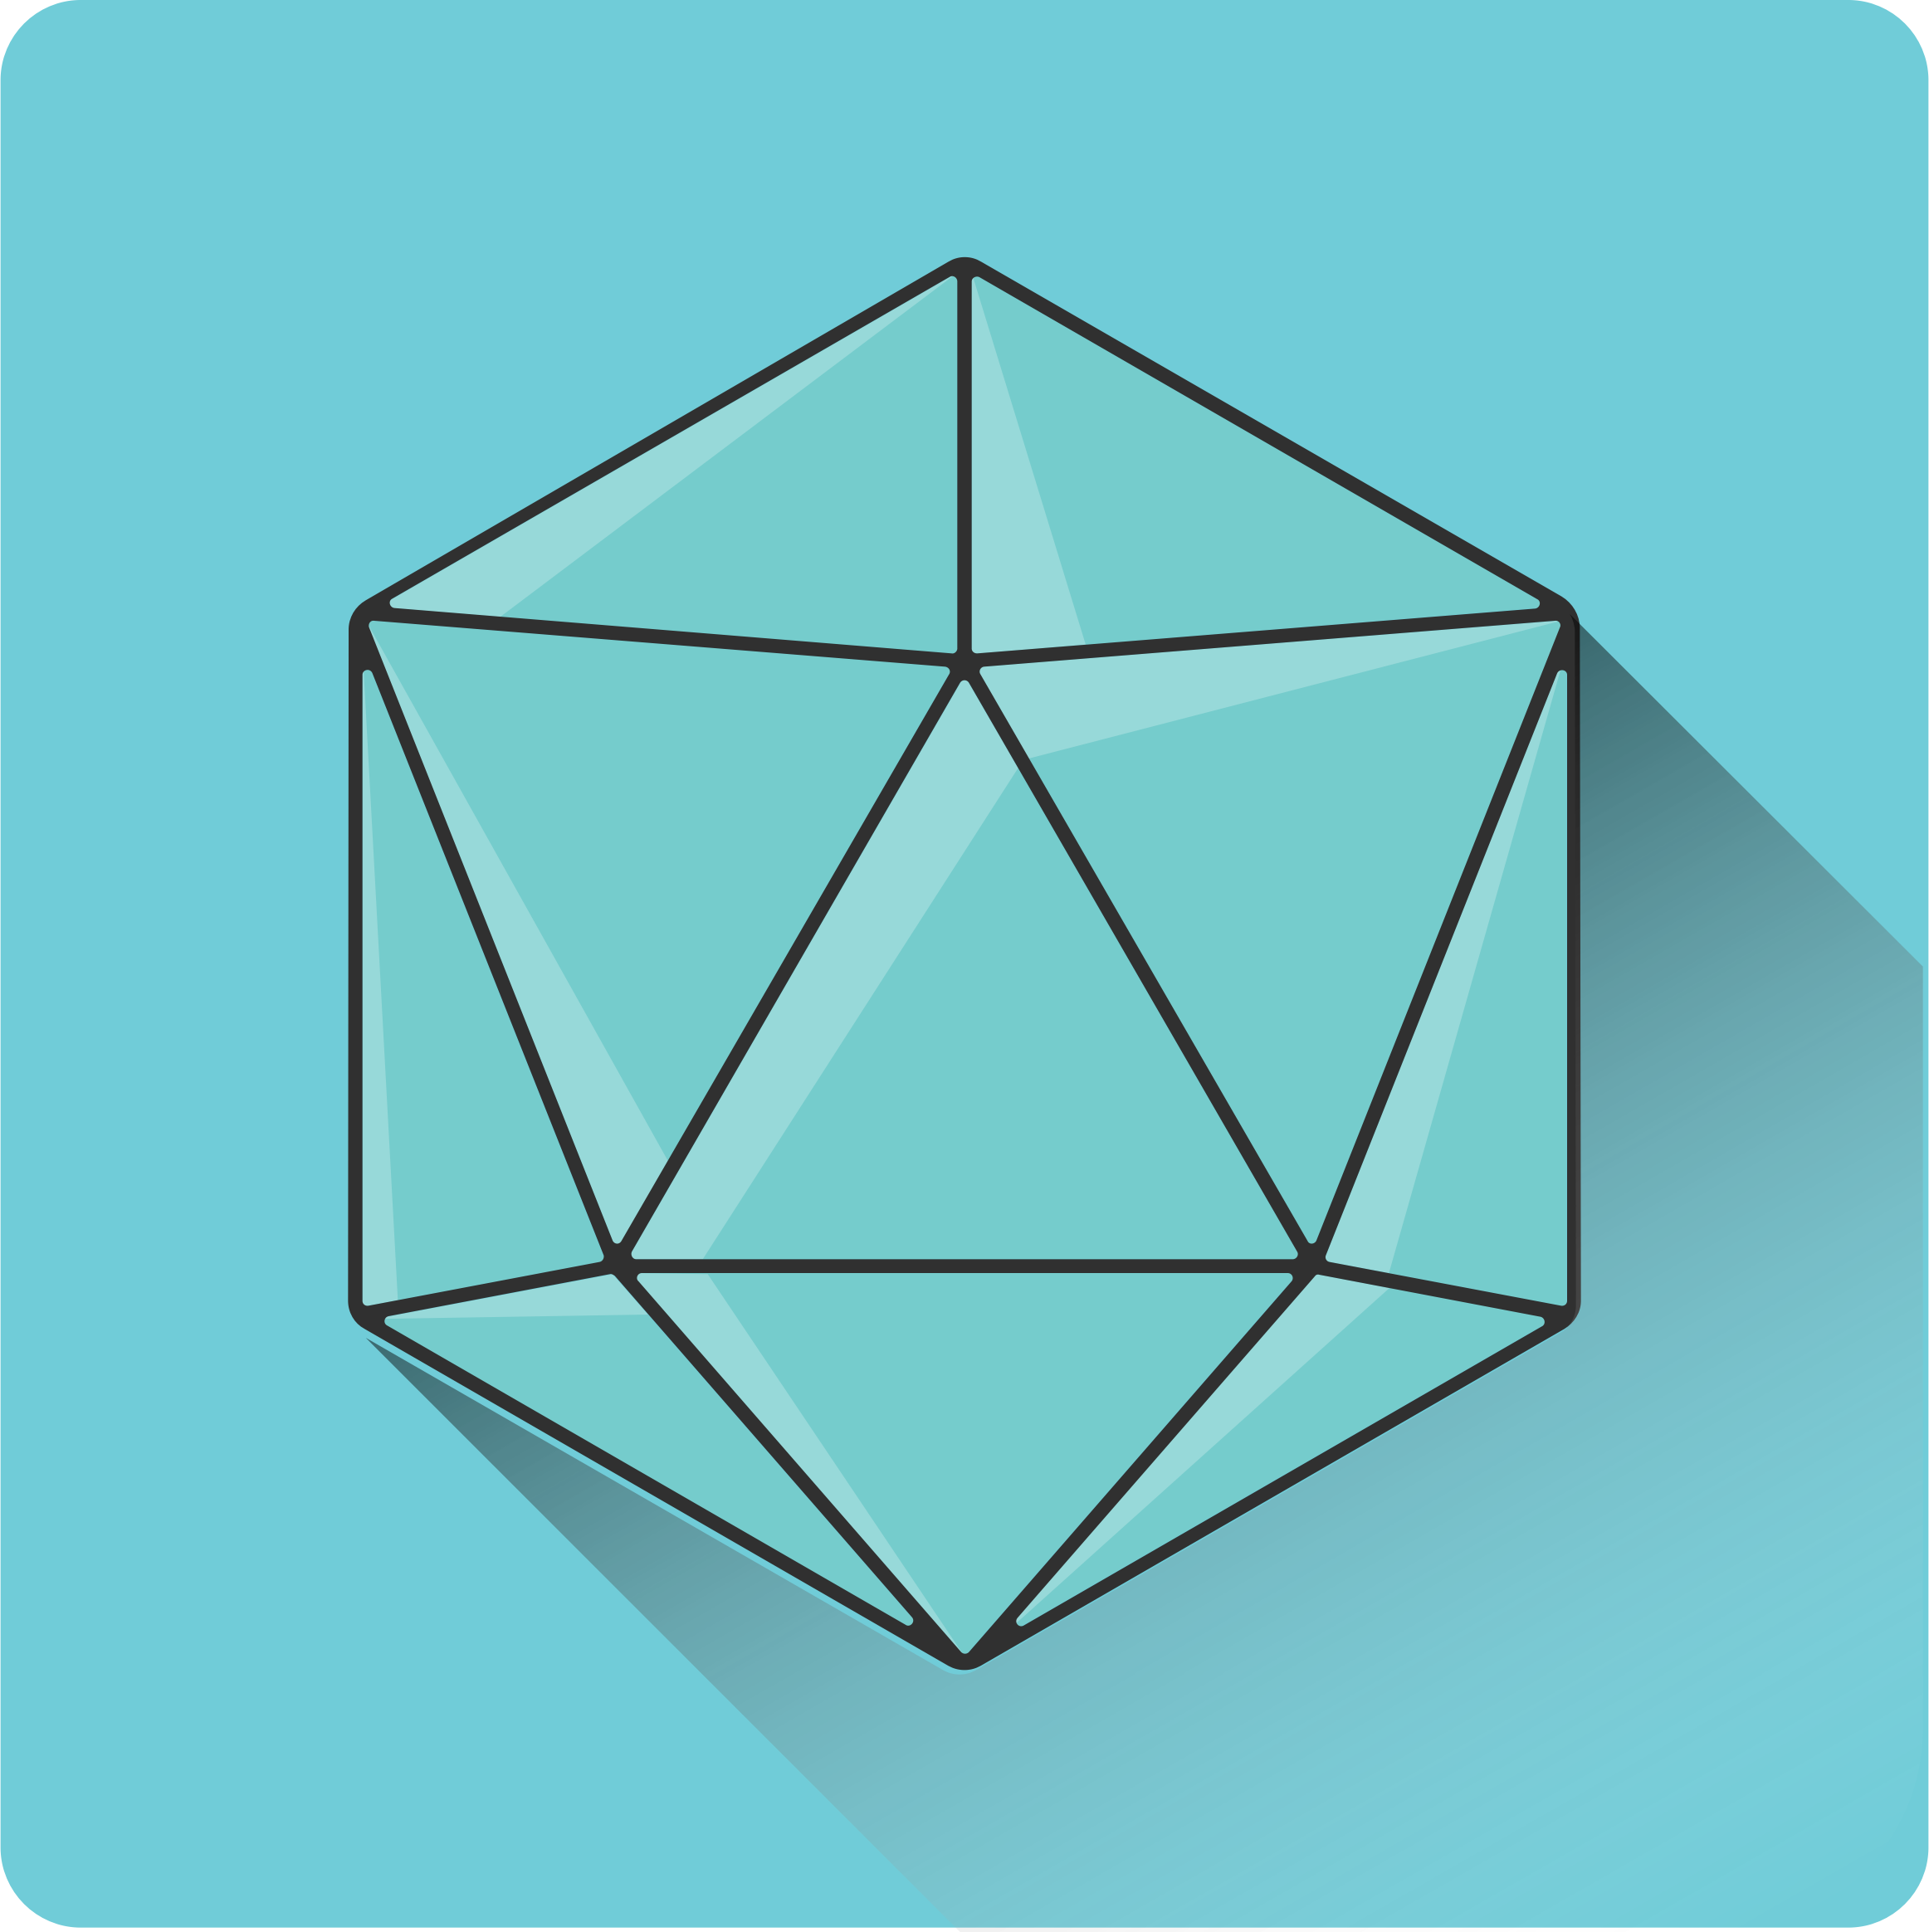 shadowed 20 sided dice icon by cinemacookie